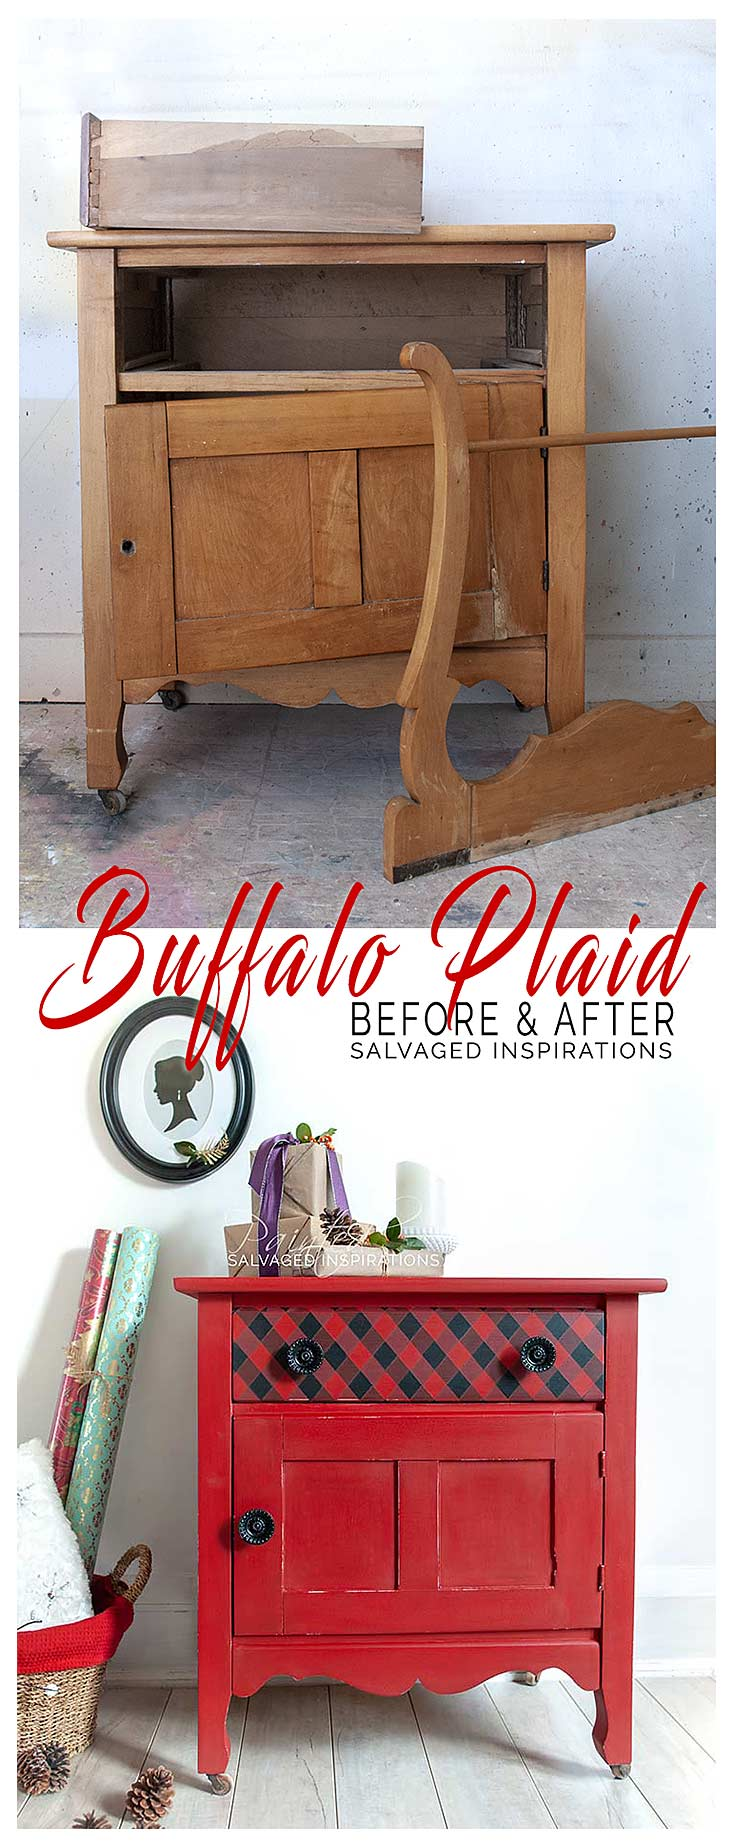 Before And After Painted Buffalo Plaid Makeover